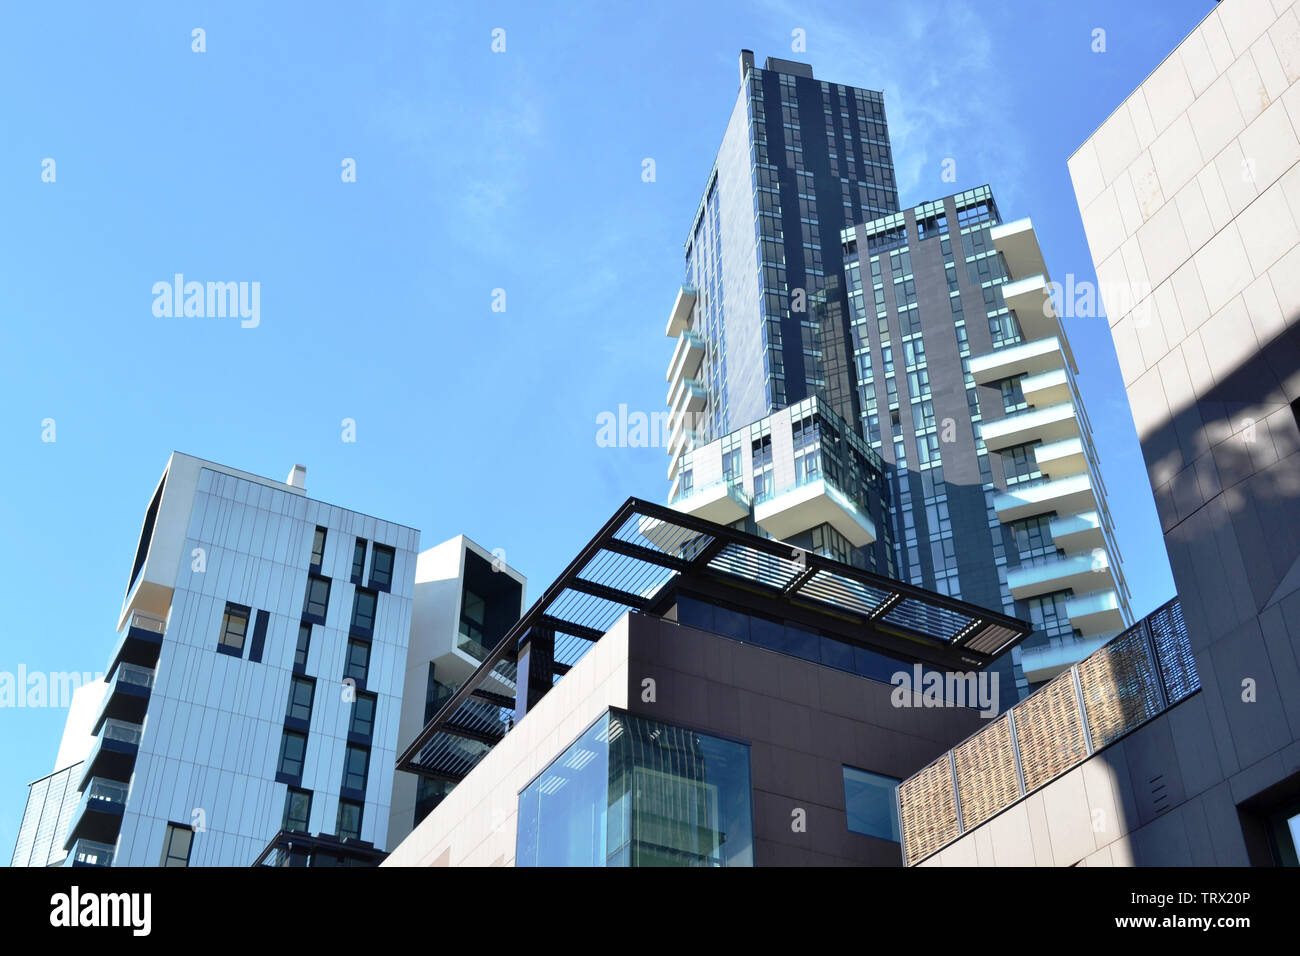 Modern highly technological look of the new residences of the district Porta Nuova in Milan. Stock Photo